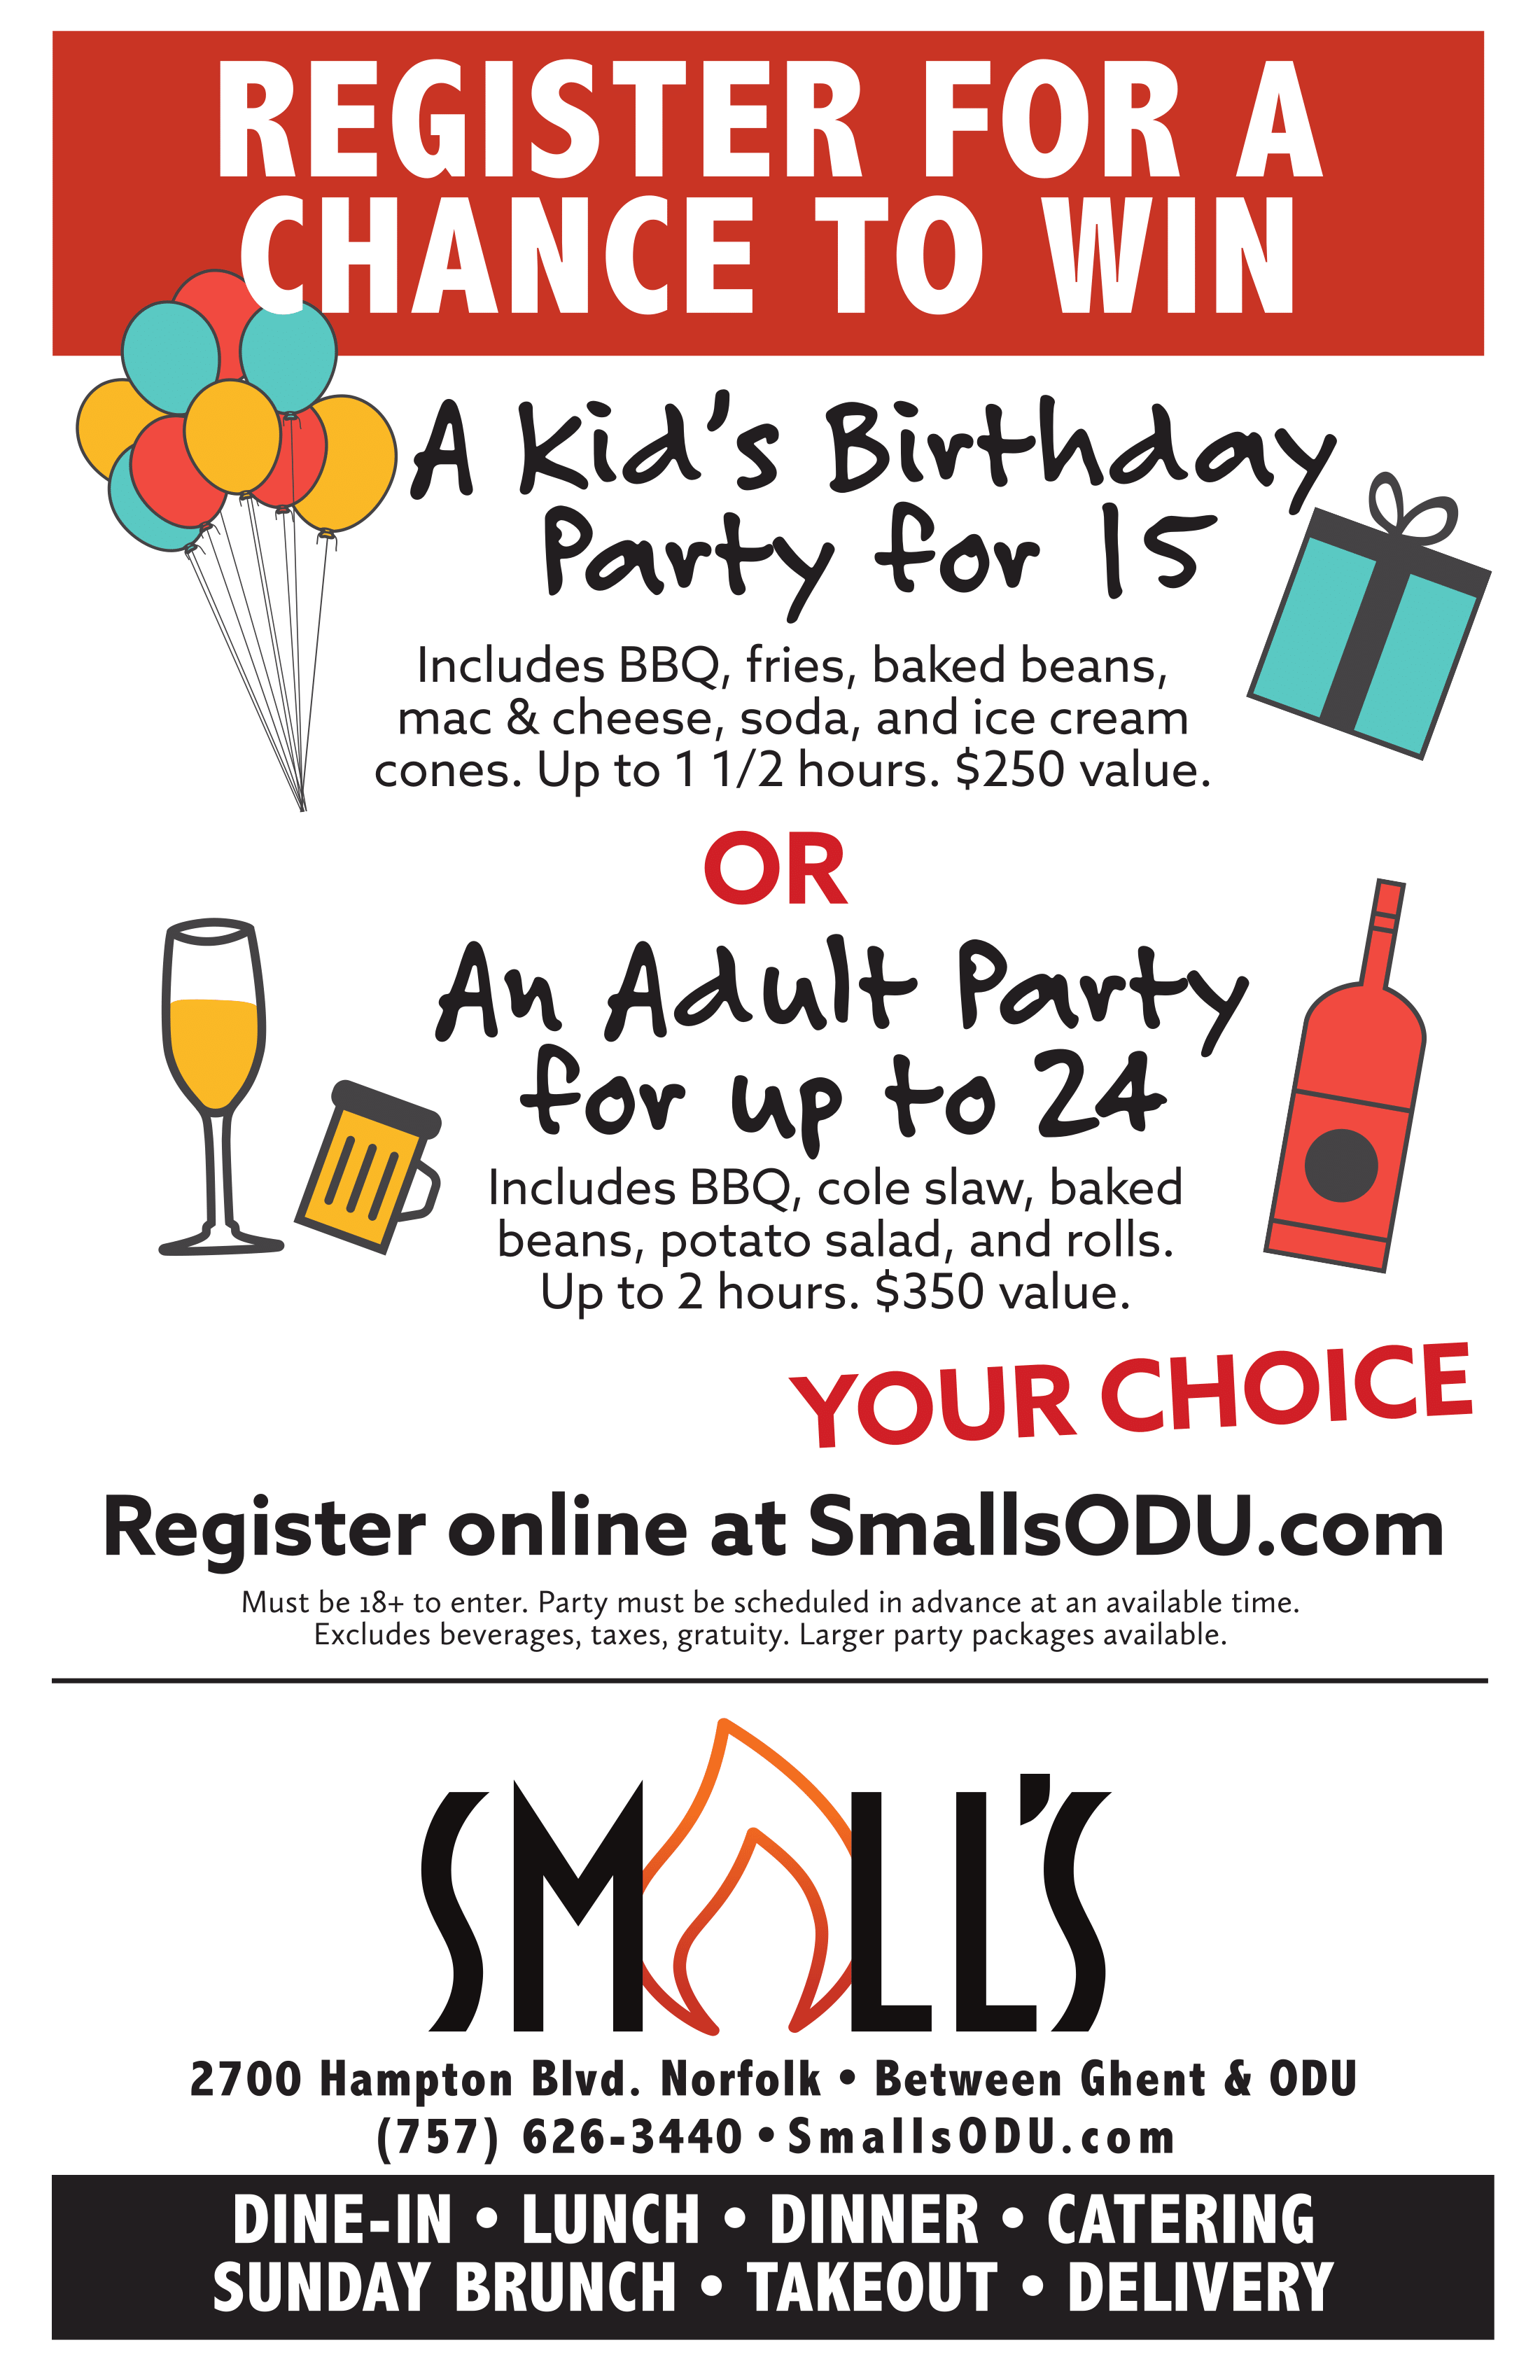 REGISTER FOR A CHANCE TO WIN. A Kid's Birthday   Party for 15 Register online at SmallsODU.com Includes BBQ, fries, baked beans, mac & cheese, soda, and ice cream cones. Up to 1 1/2 hours. $250 value. An Adult Party for up to 24 OR REGISTER FOR A CHANCE TO WIN Includes BBQ, cole slaw, baked beans, potato salad, and rolls. Up to 2 hours. $350 value. 2700 Hampton Blvd. Norfolk • Between Ghent & ODU (757) 626-3440 • SmallsODU.com DINE-IN • LUNCH • DINNER • CATERING SUNDAY BRUNCH • TAKEOUT • DELIVERY YOUR CHOICE Must be 18+ to enter. Party must be scheduled in advance at an available time. Excludes beverages, taxes, gratuity. Larger party packages available.